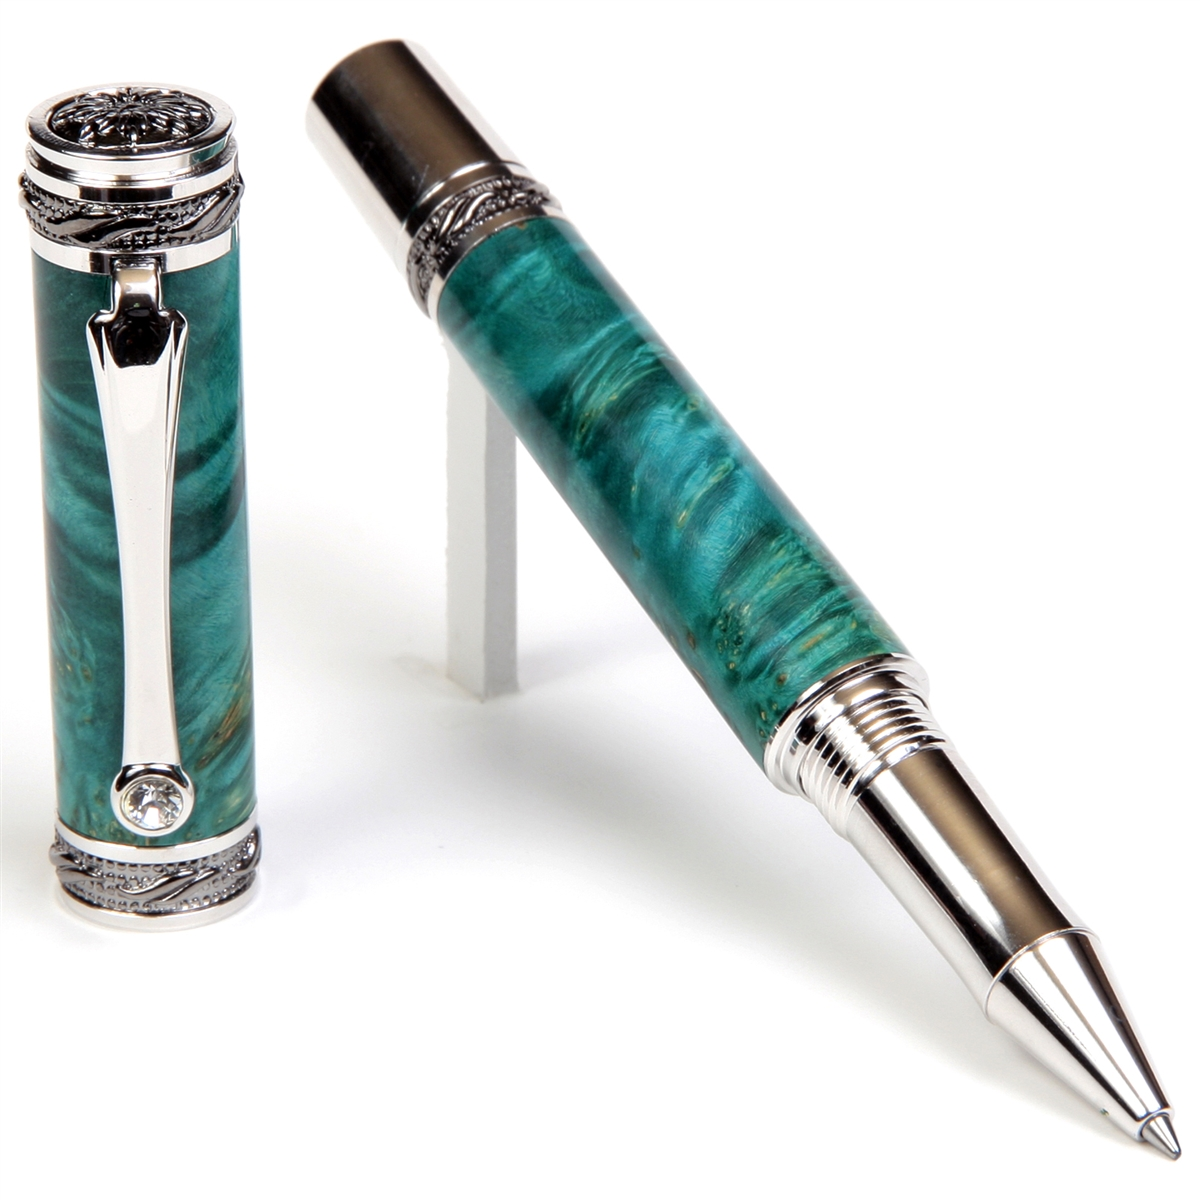 Majestic Rollerball Pen - Turquoise Box Elder